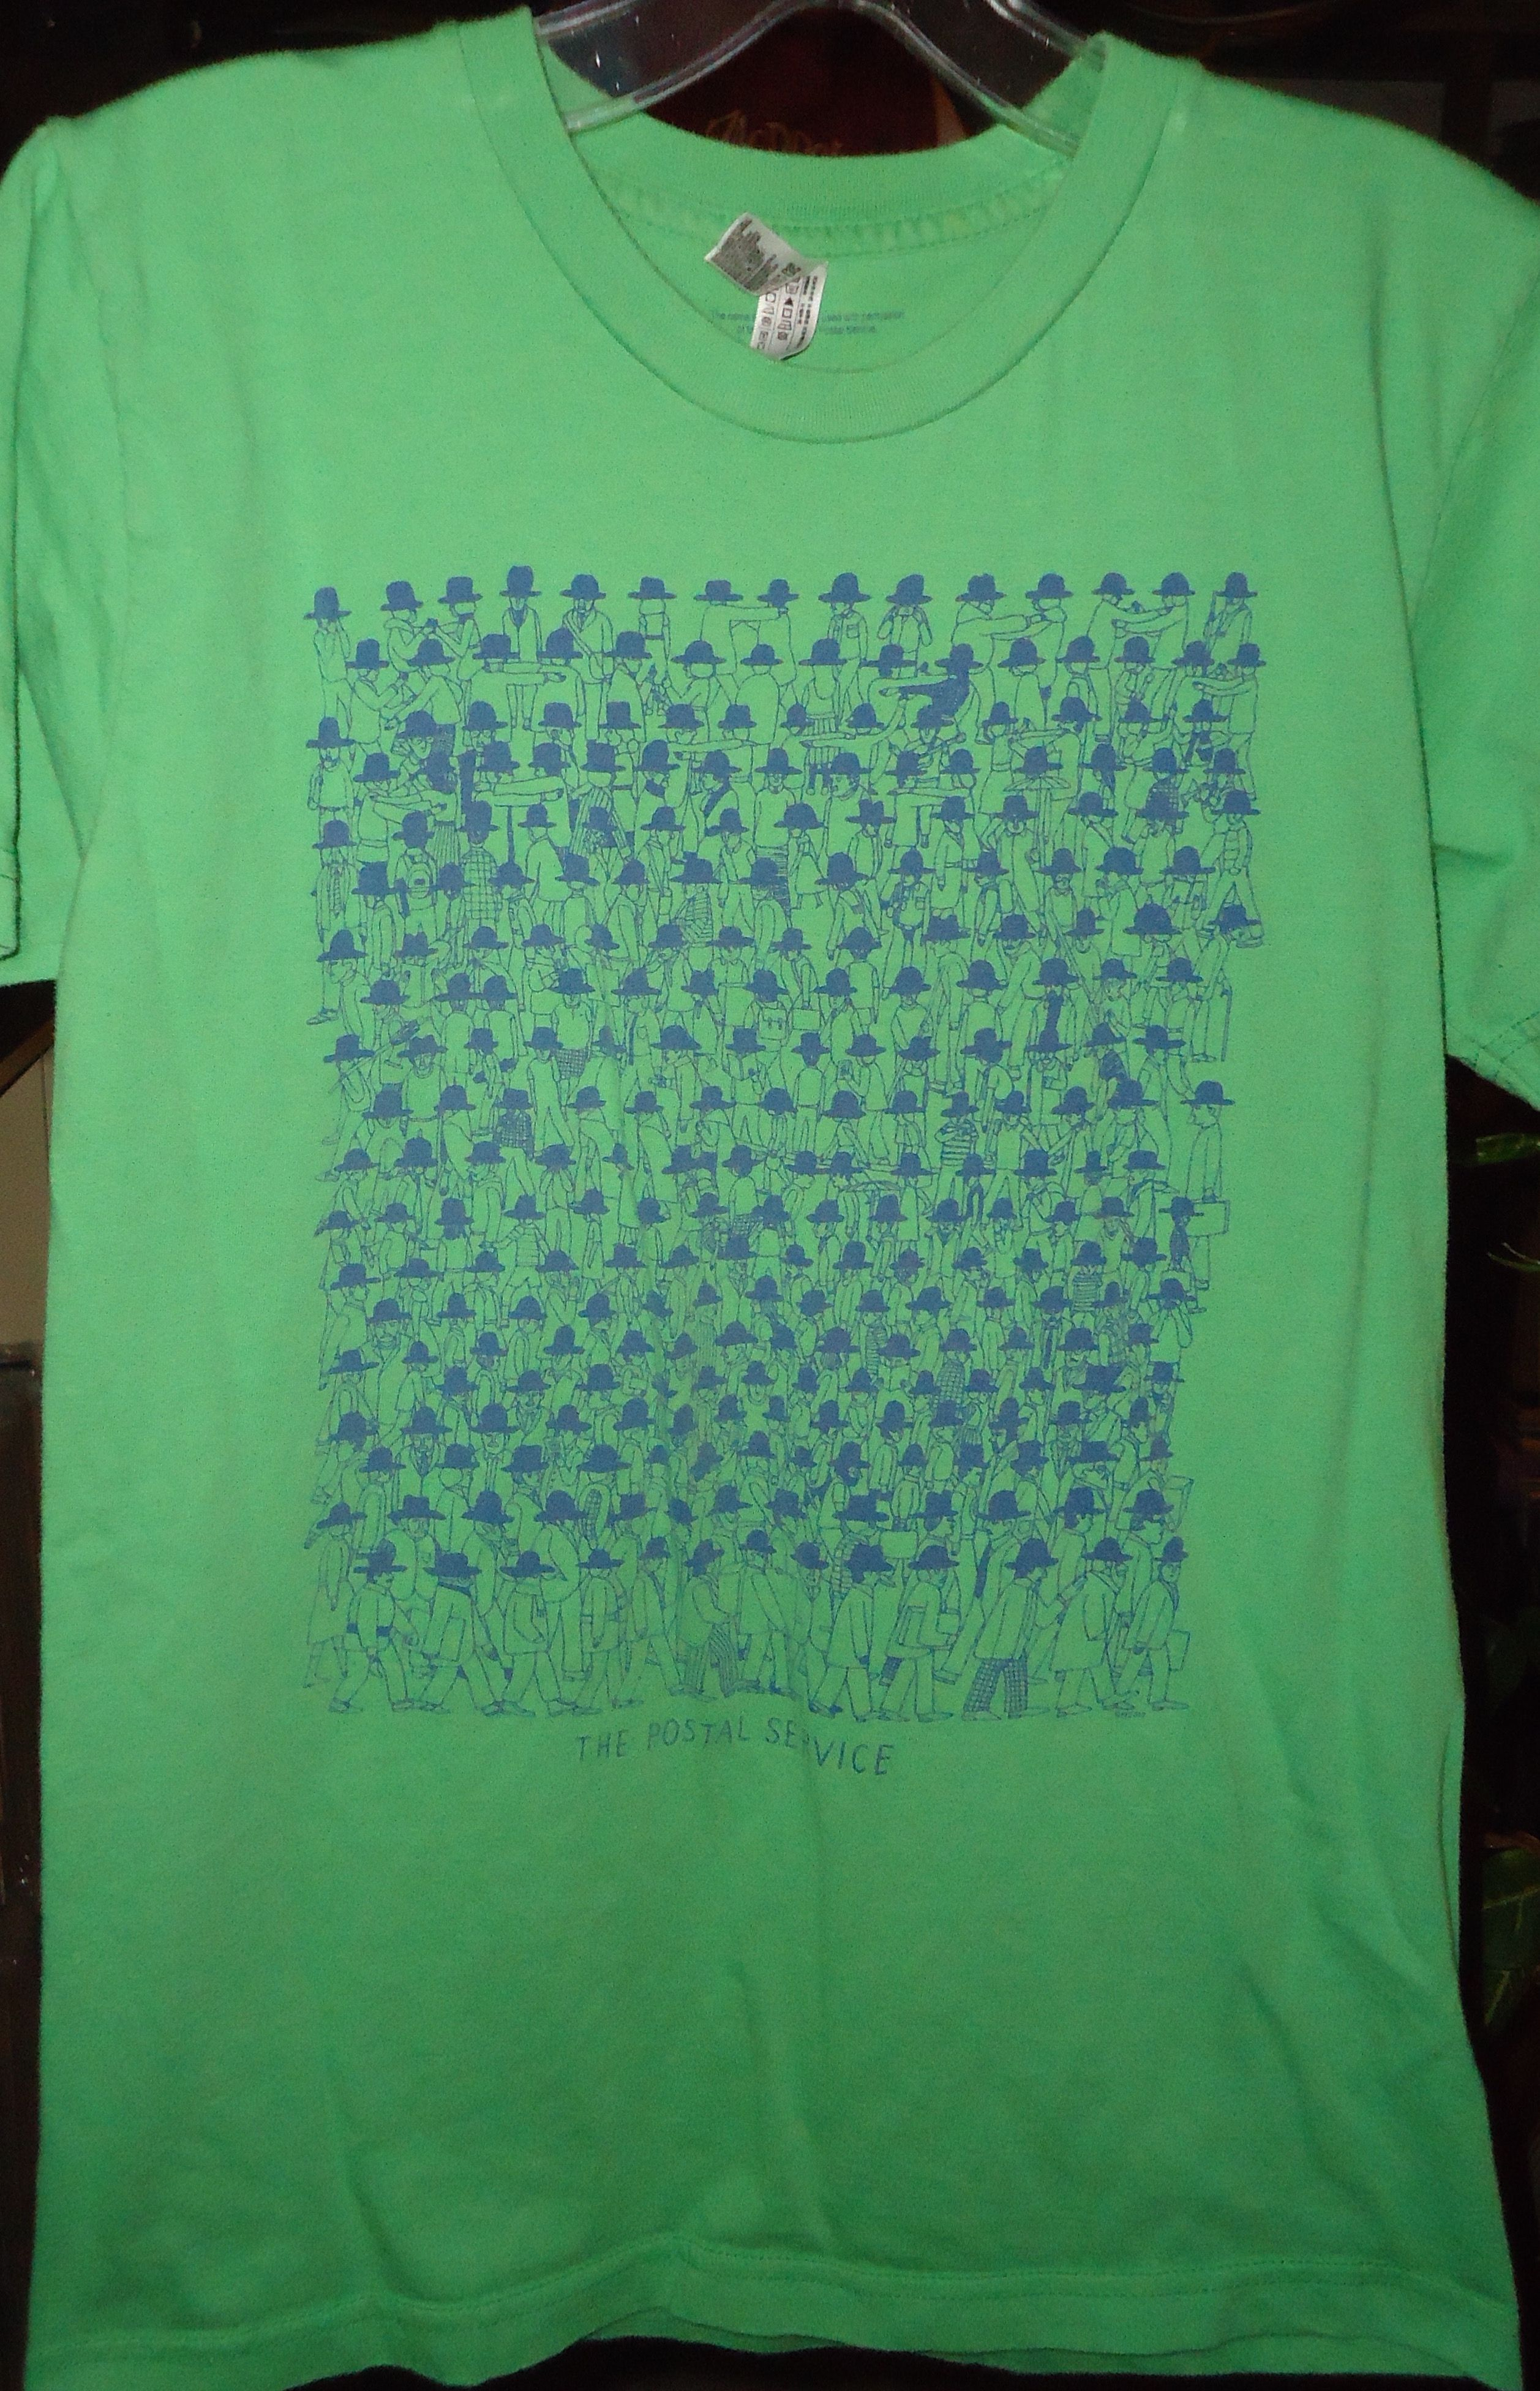 The Postal Service Vintage T Shirt Green Multiple